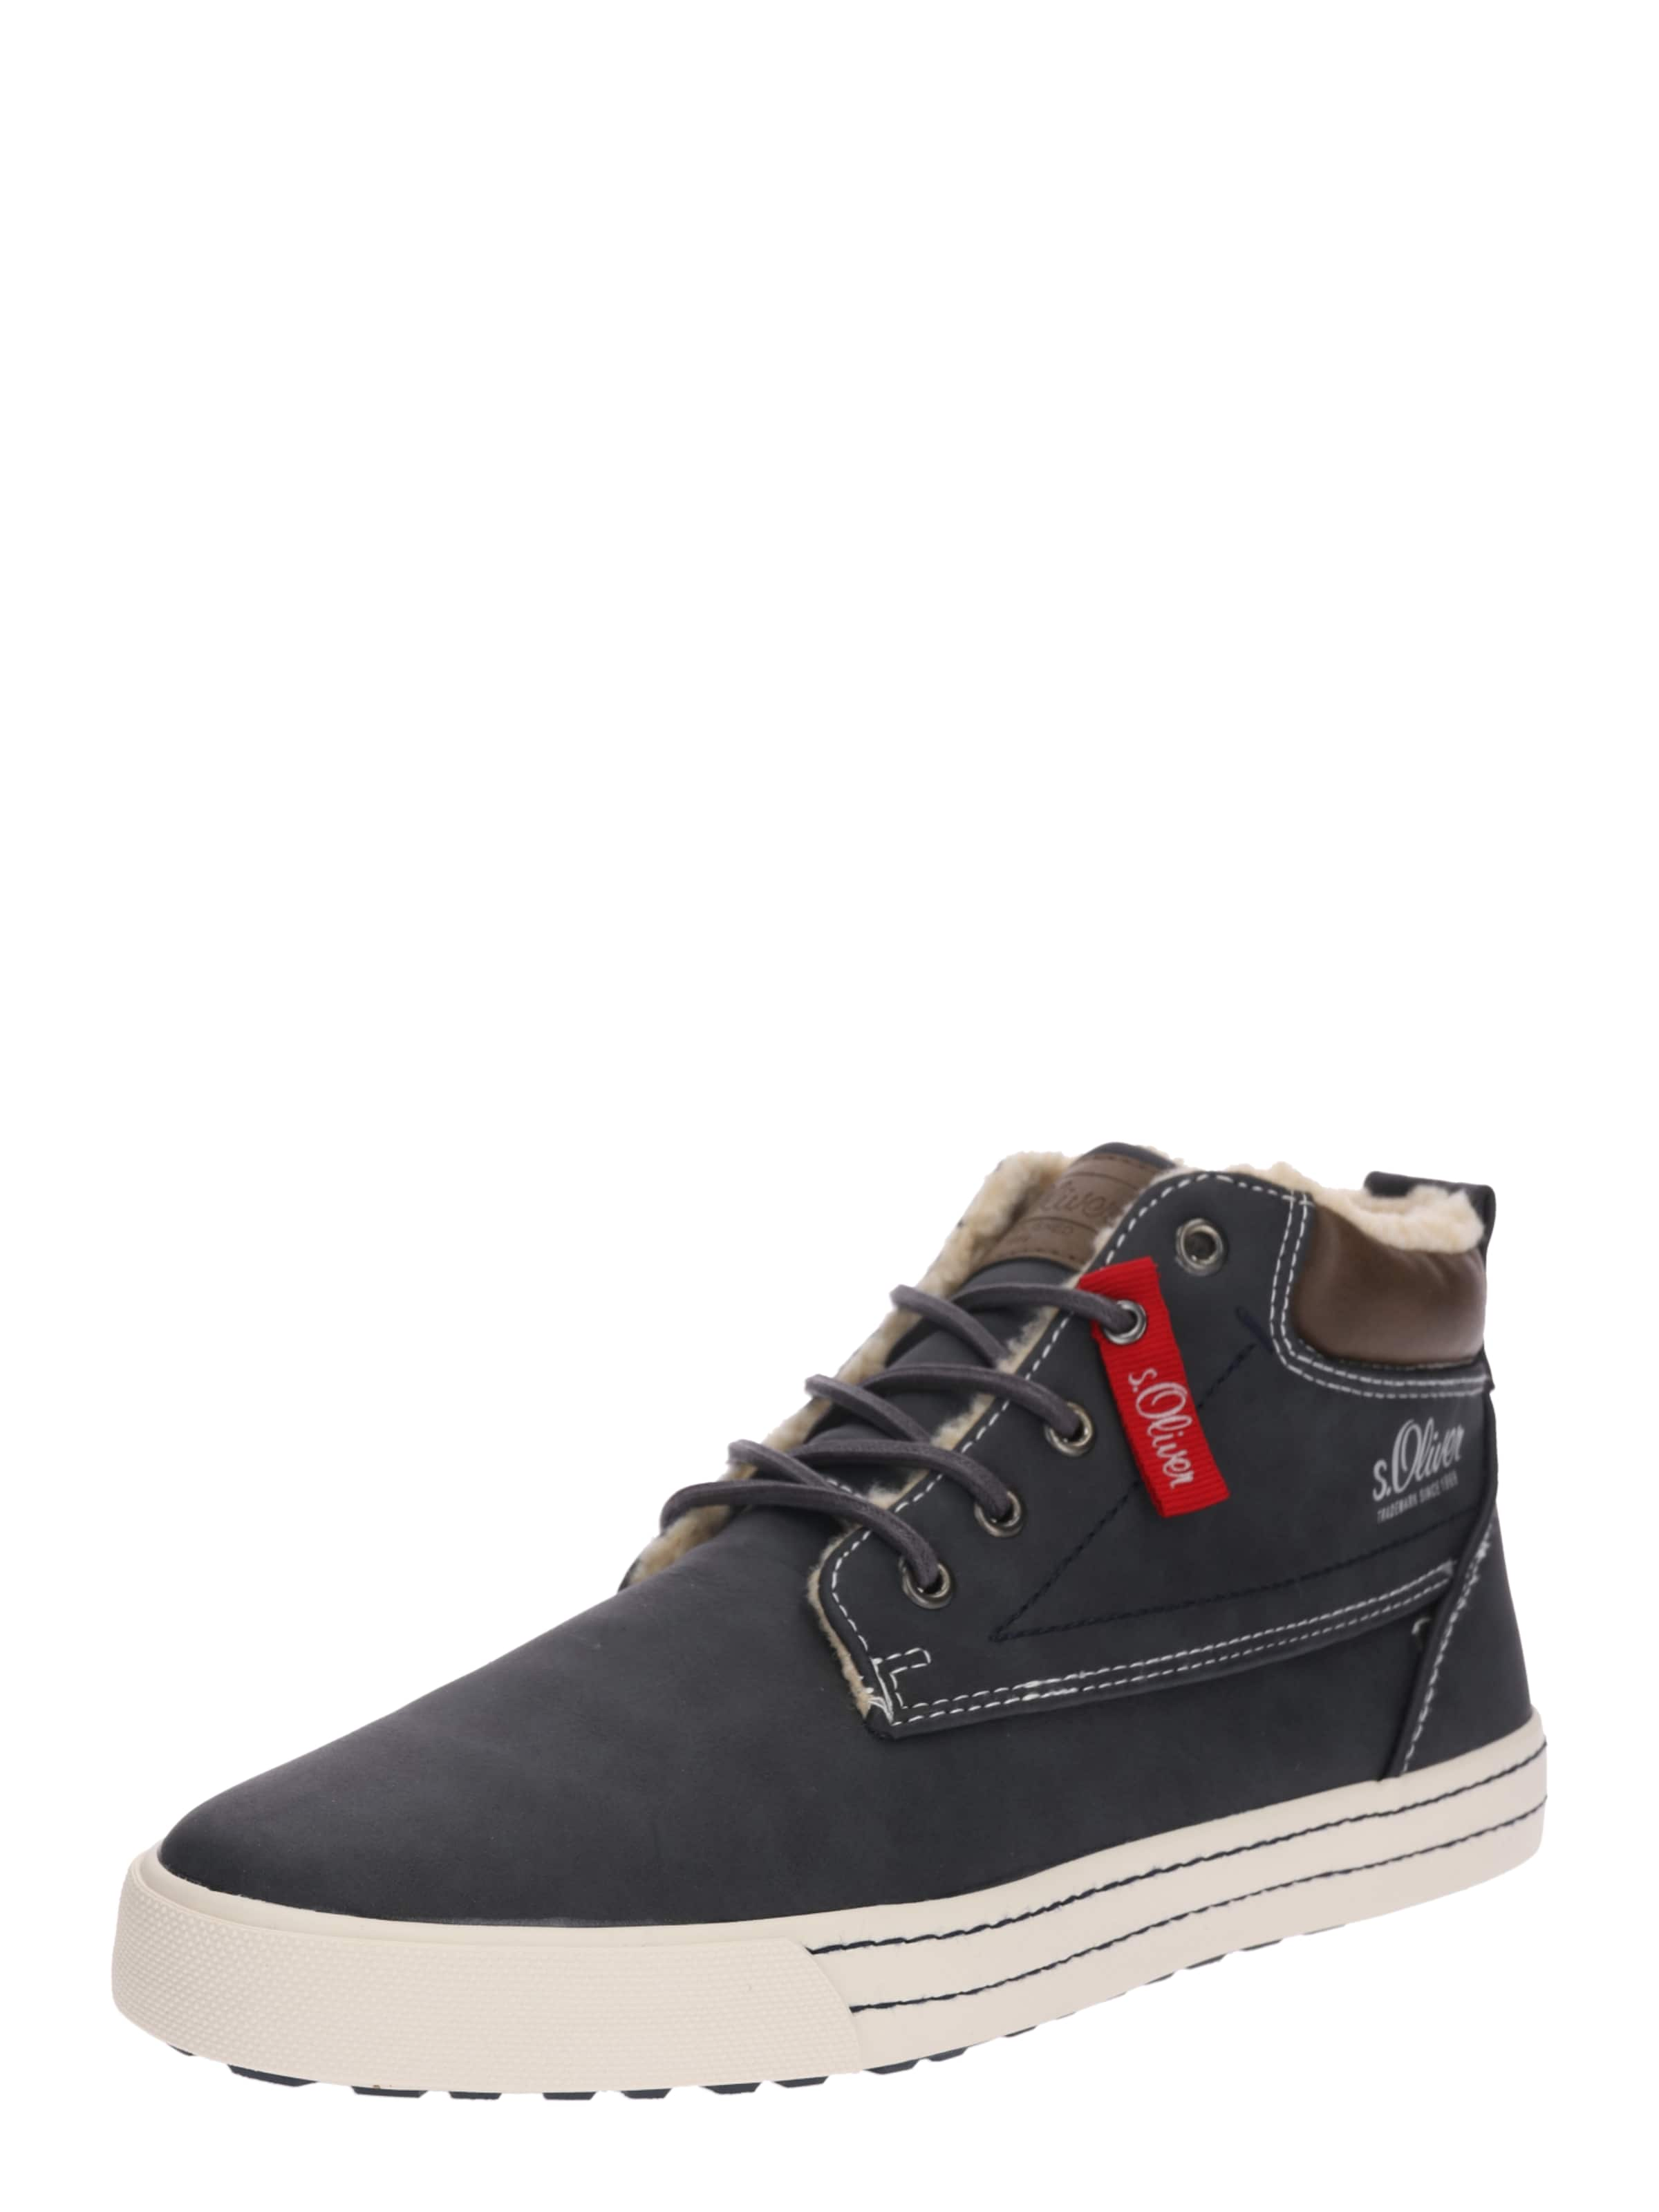 s.Oliver RED LABEL Sneaker Winterly Hohe Qualität